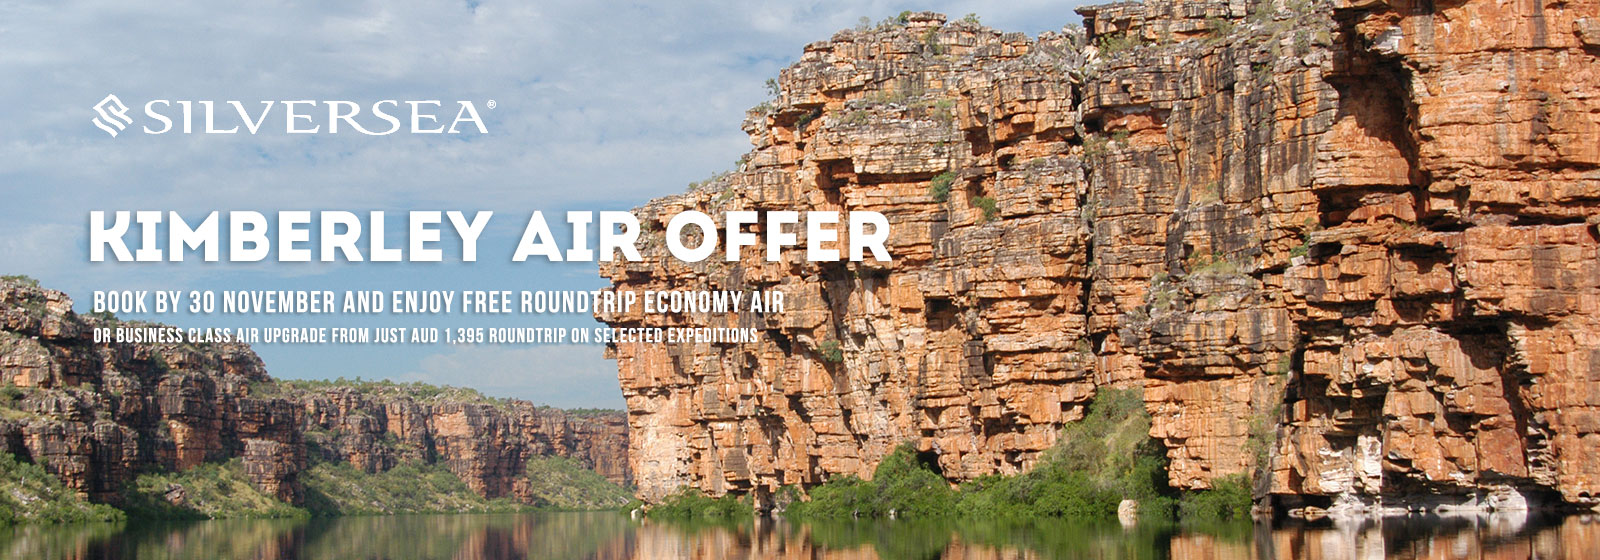 Silversea Kimberley Air Offer